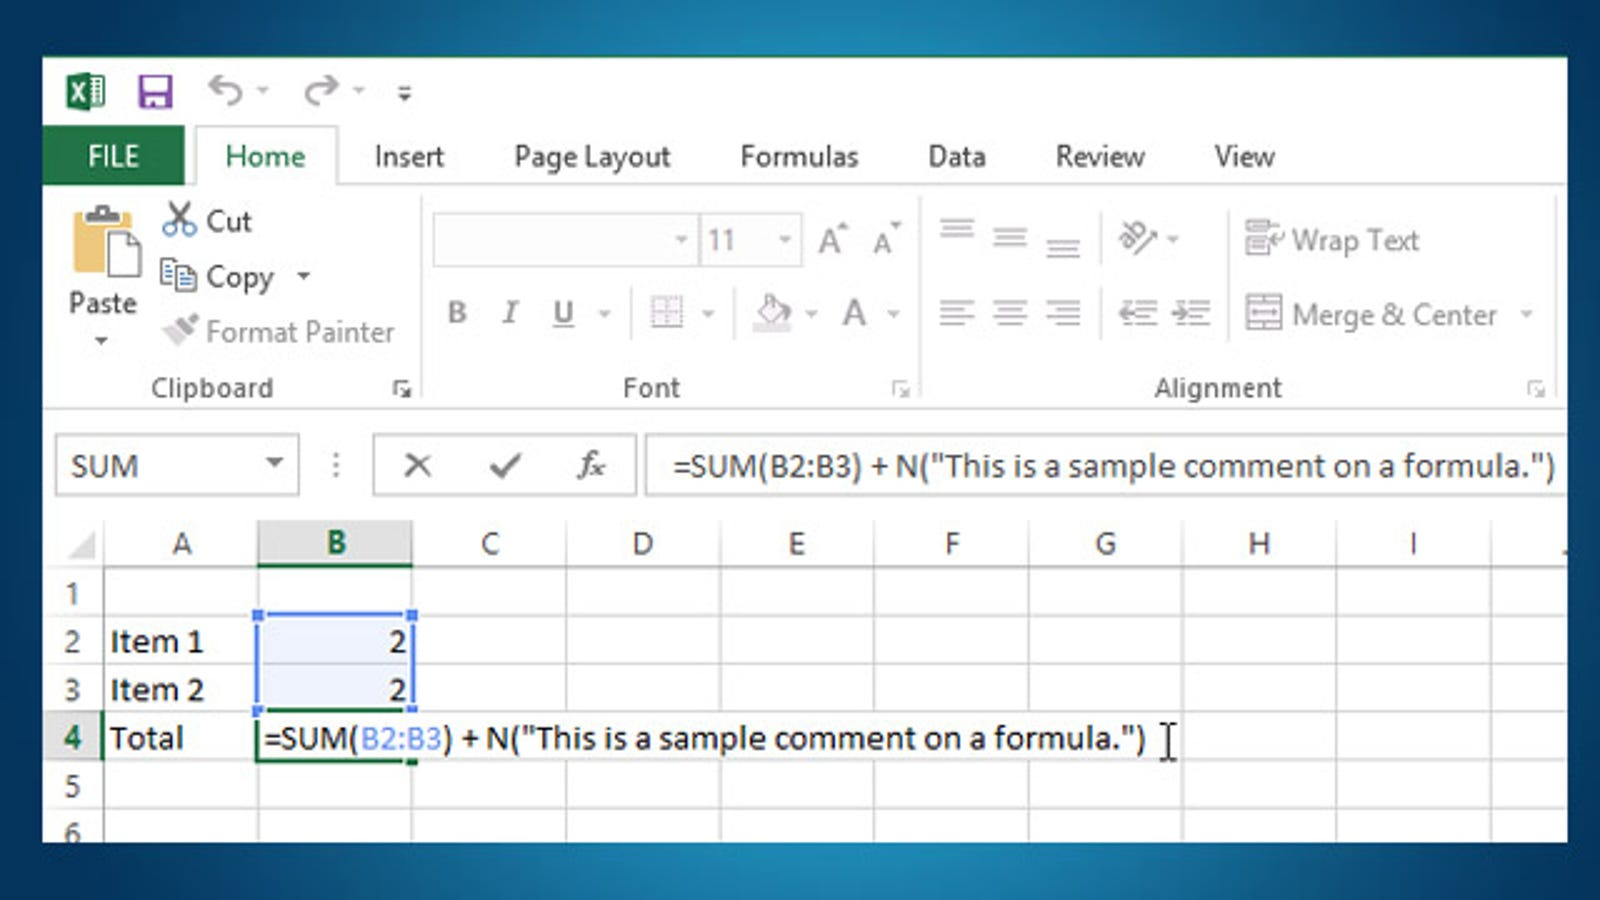 Add comments to a formula in excel for your future reference ibookread ePUb